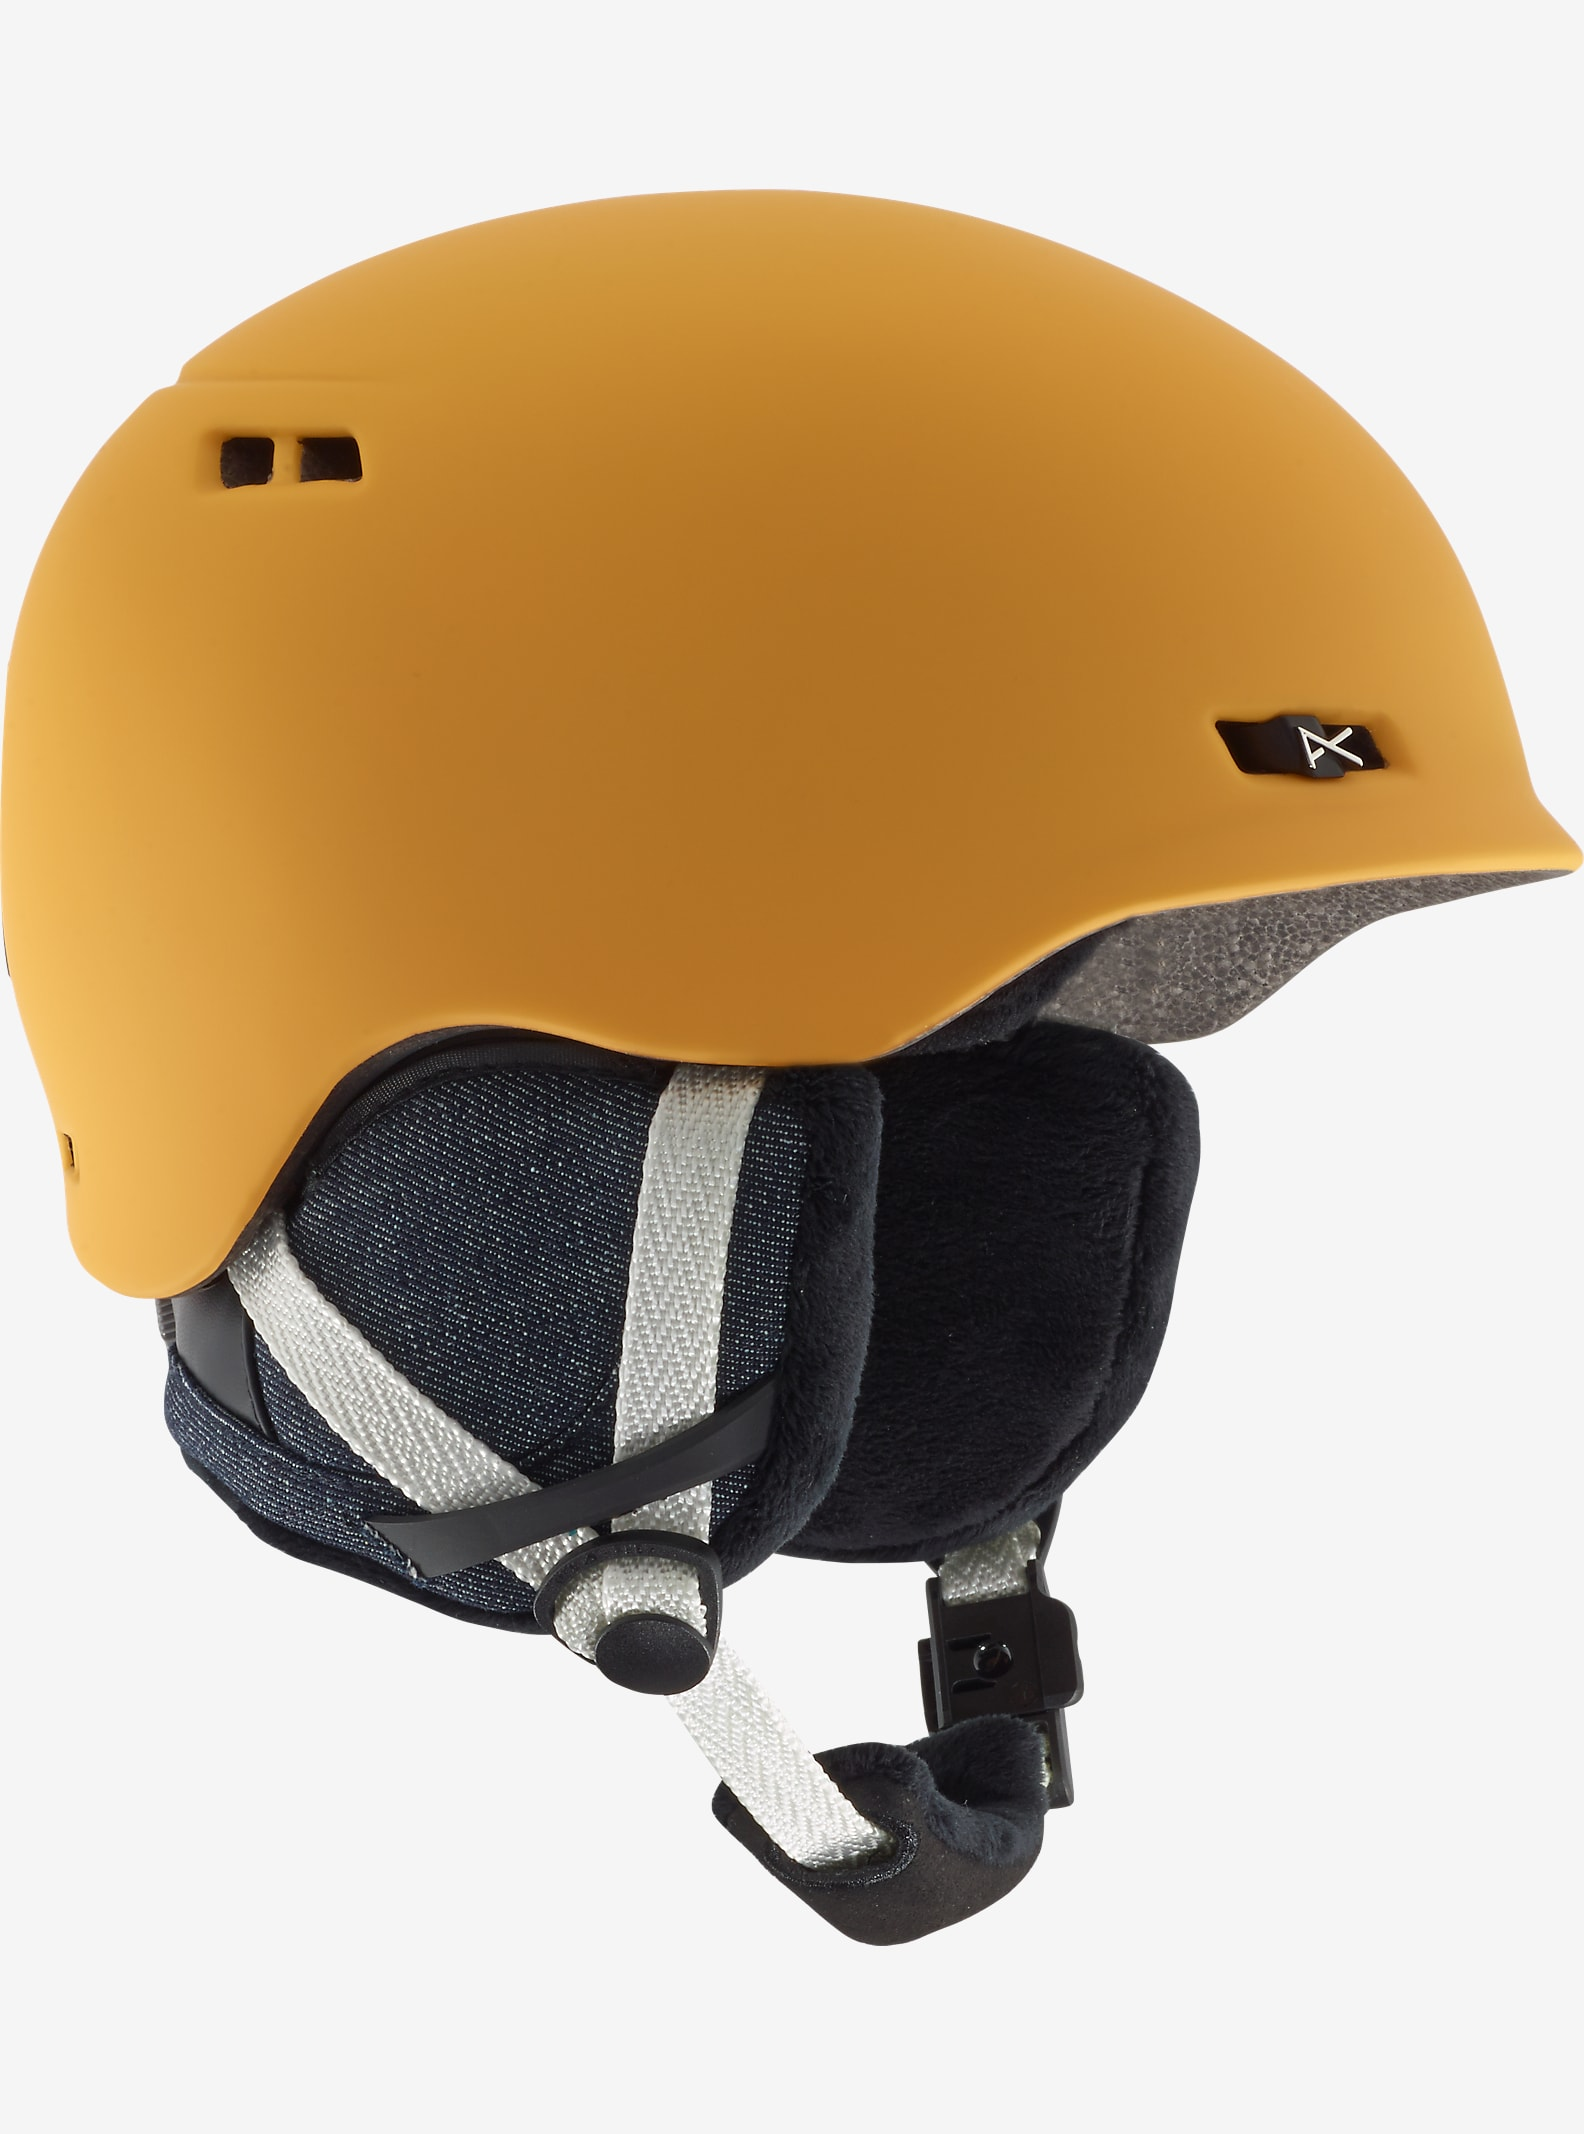 anon. Griffon Helmet shown in Curry Yellow